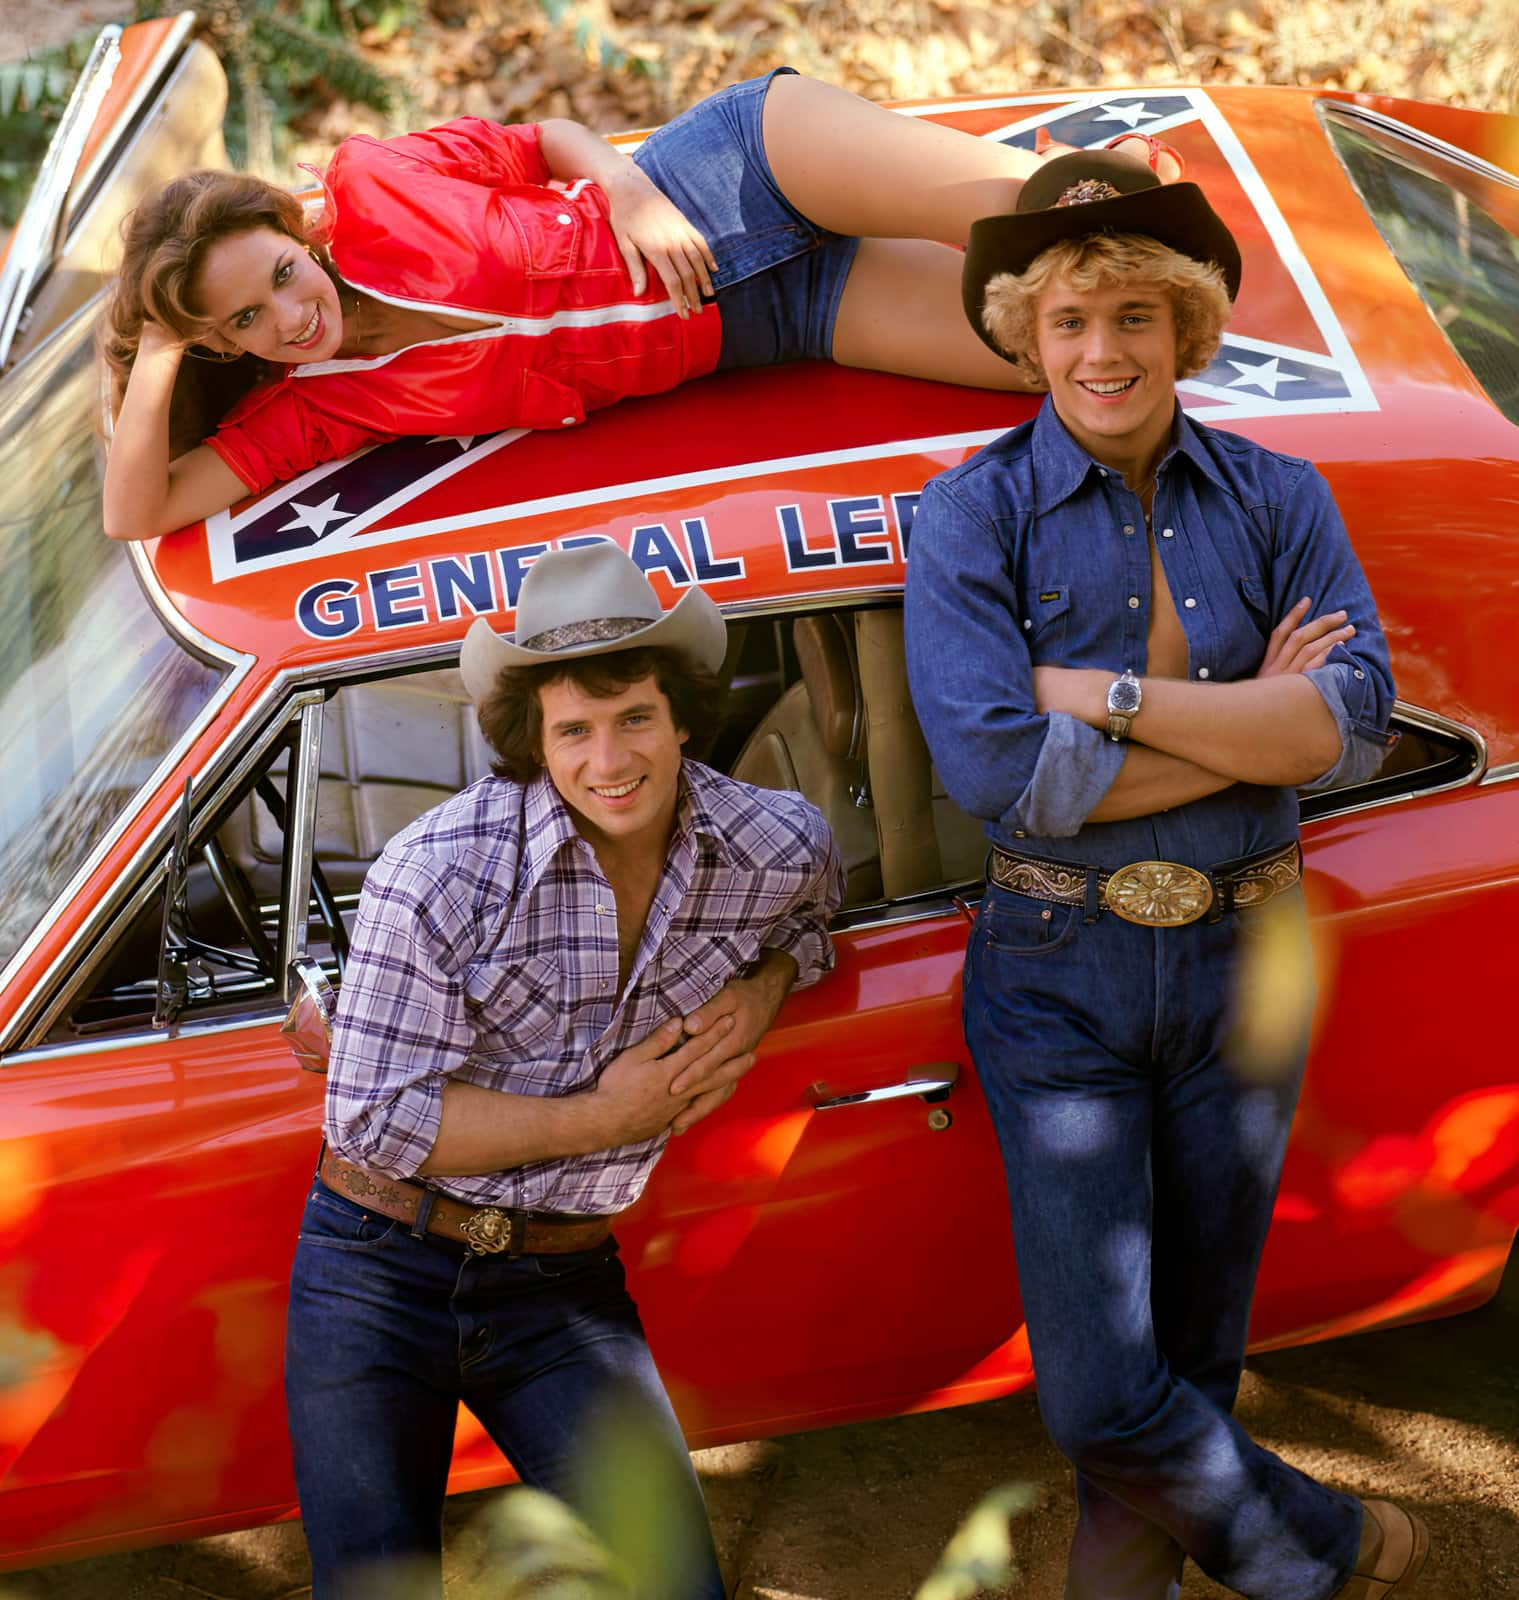 Vintage The Dukes of Hazzard TV show with the General Lee car